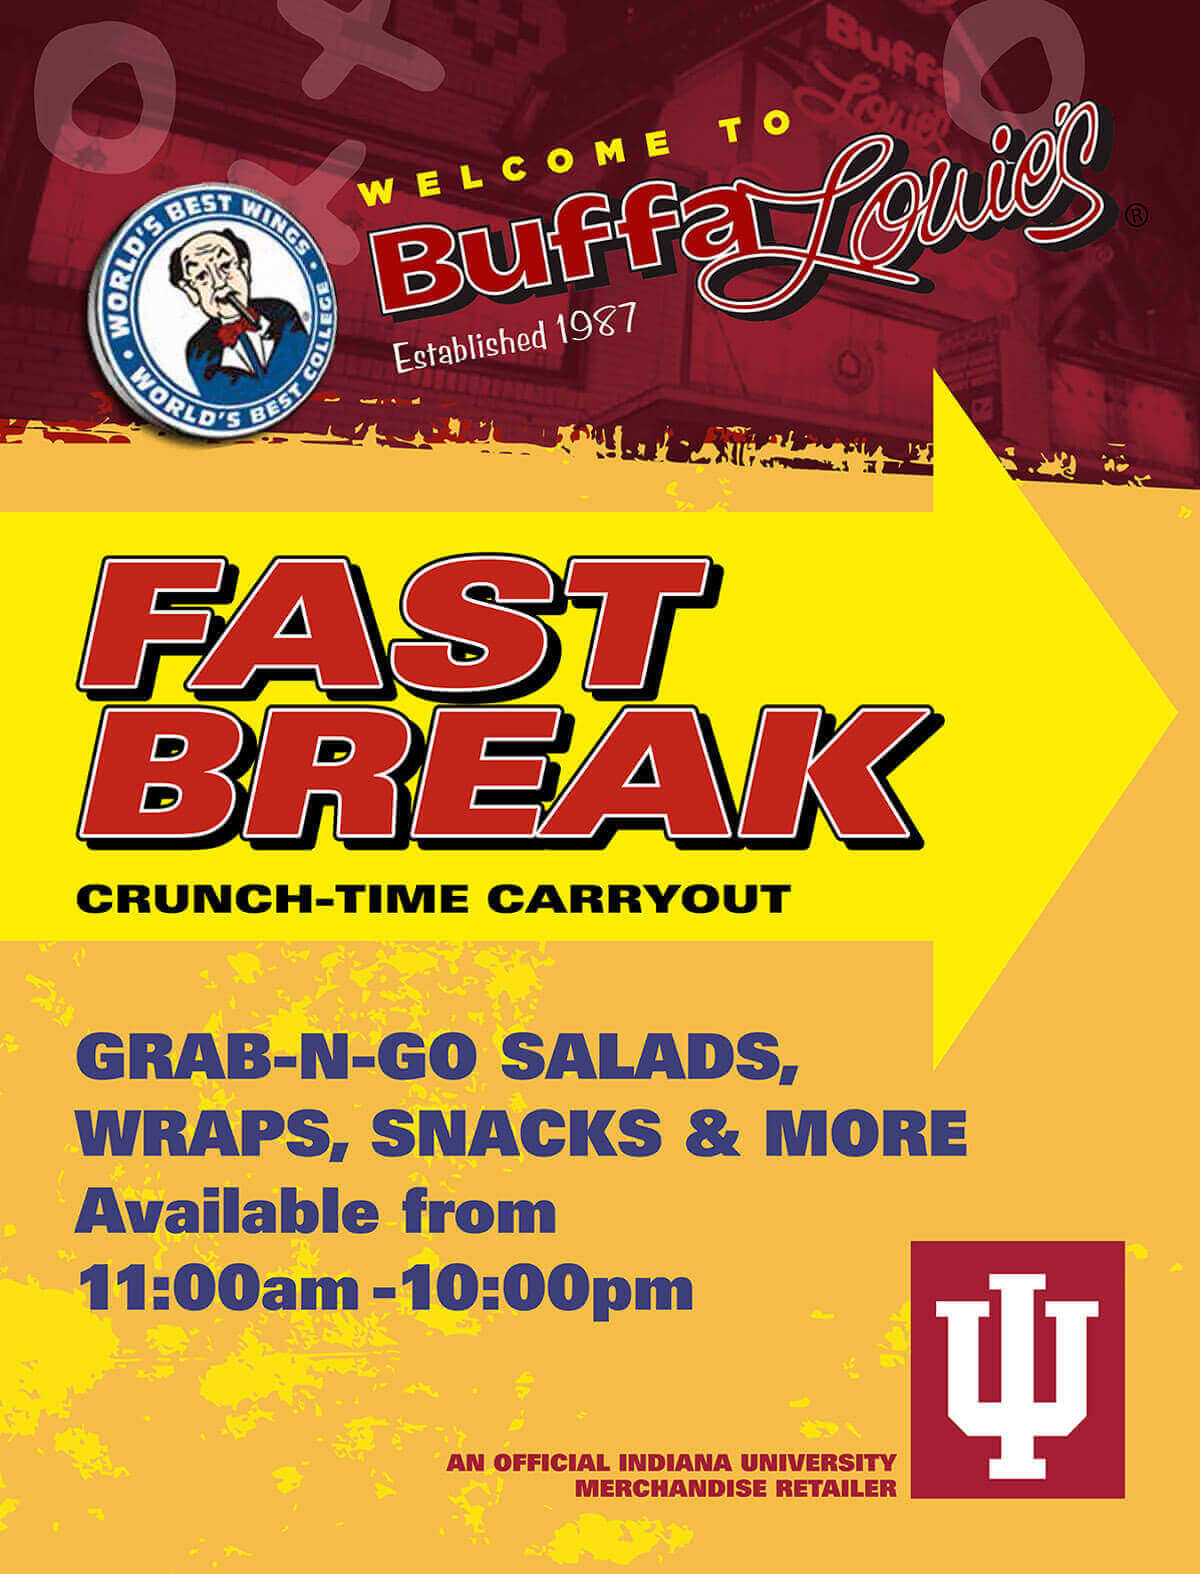 BuffaLouie's - Fastbreak - Crunch-Time Carryout